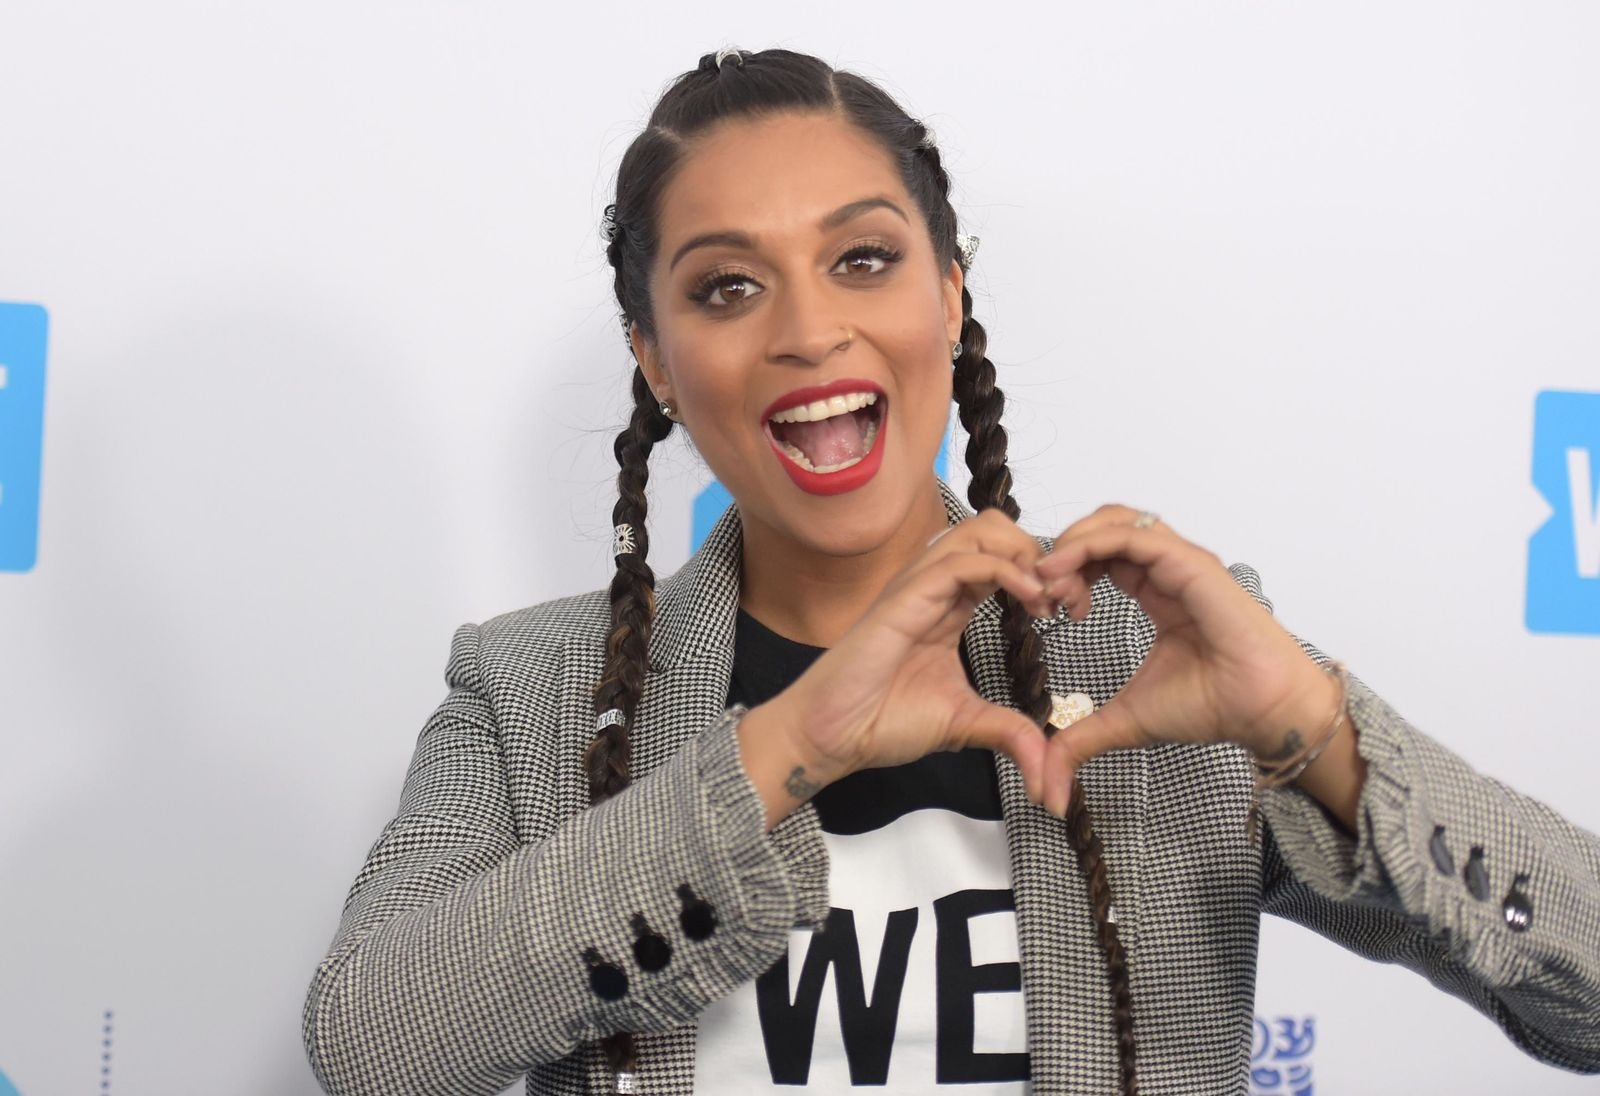 FILE - In this April 19, 2018 file photo, Lilly Singh arrives at WE Day California at The Forum in Inglewood, Calif.{ } (Photo by Richard Shotwell/Invision/AP, File)